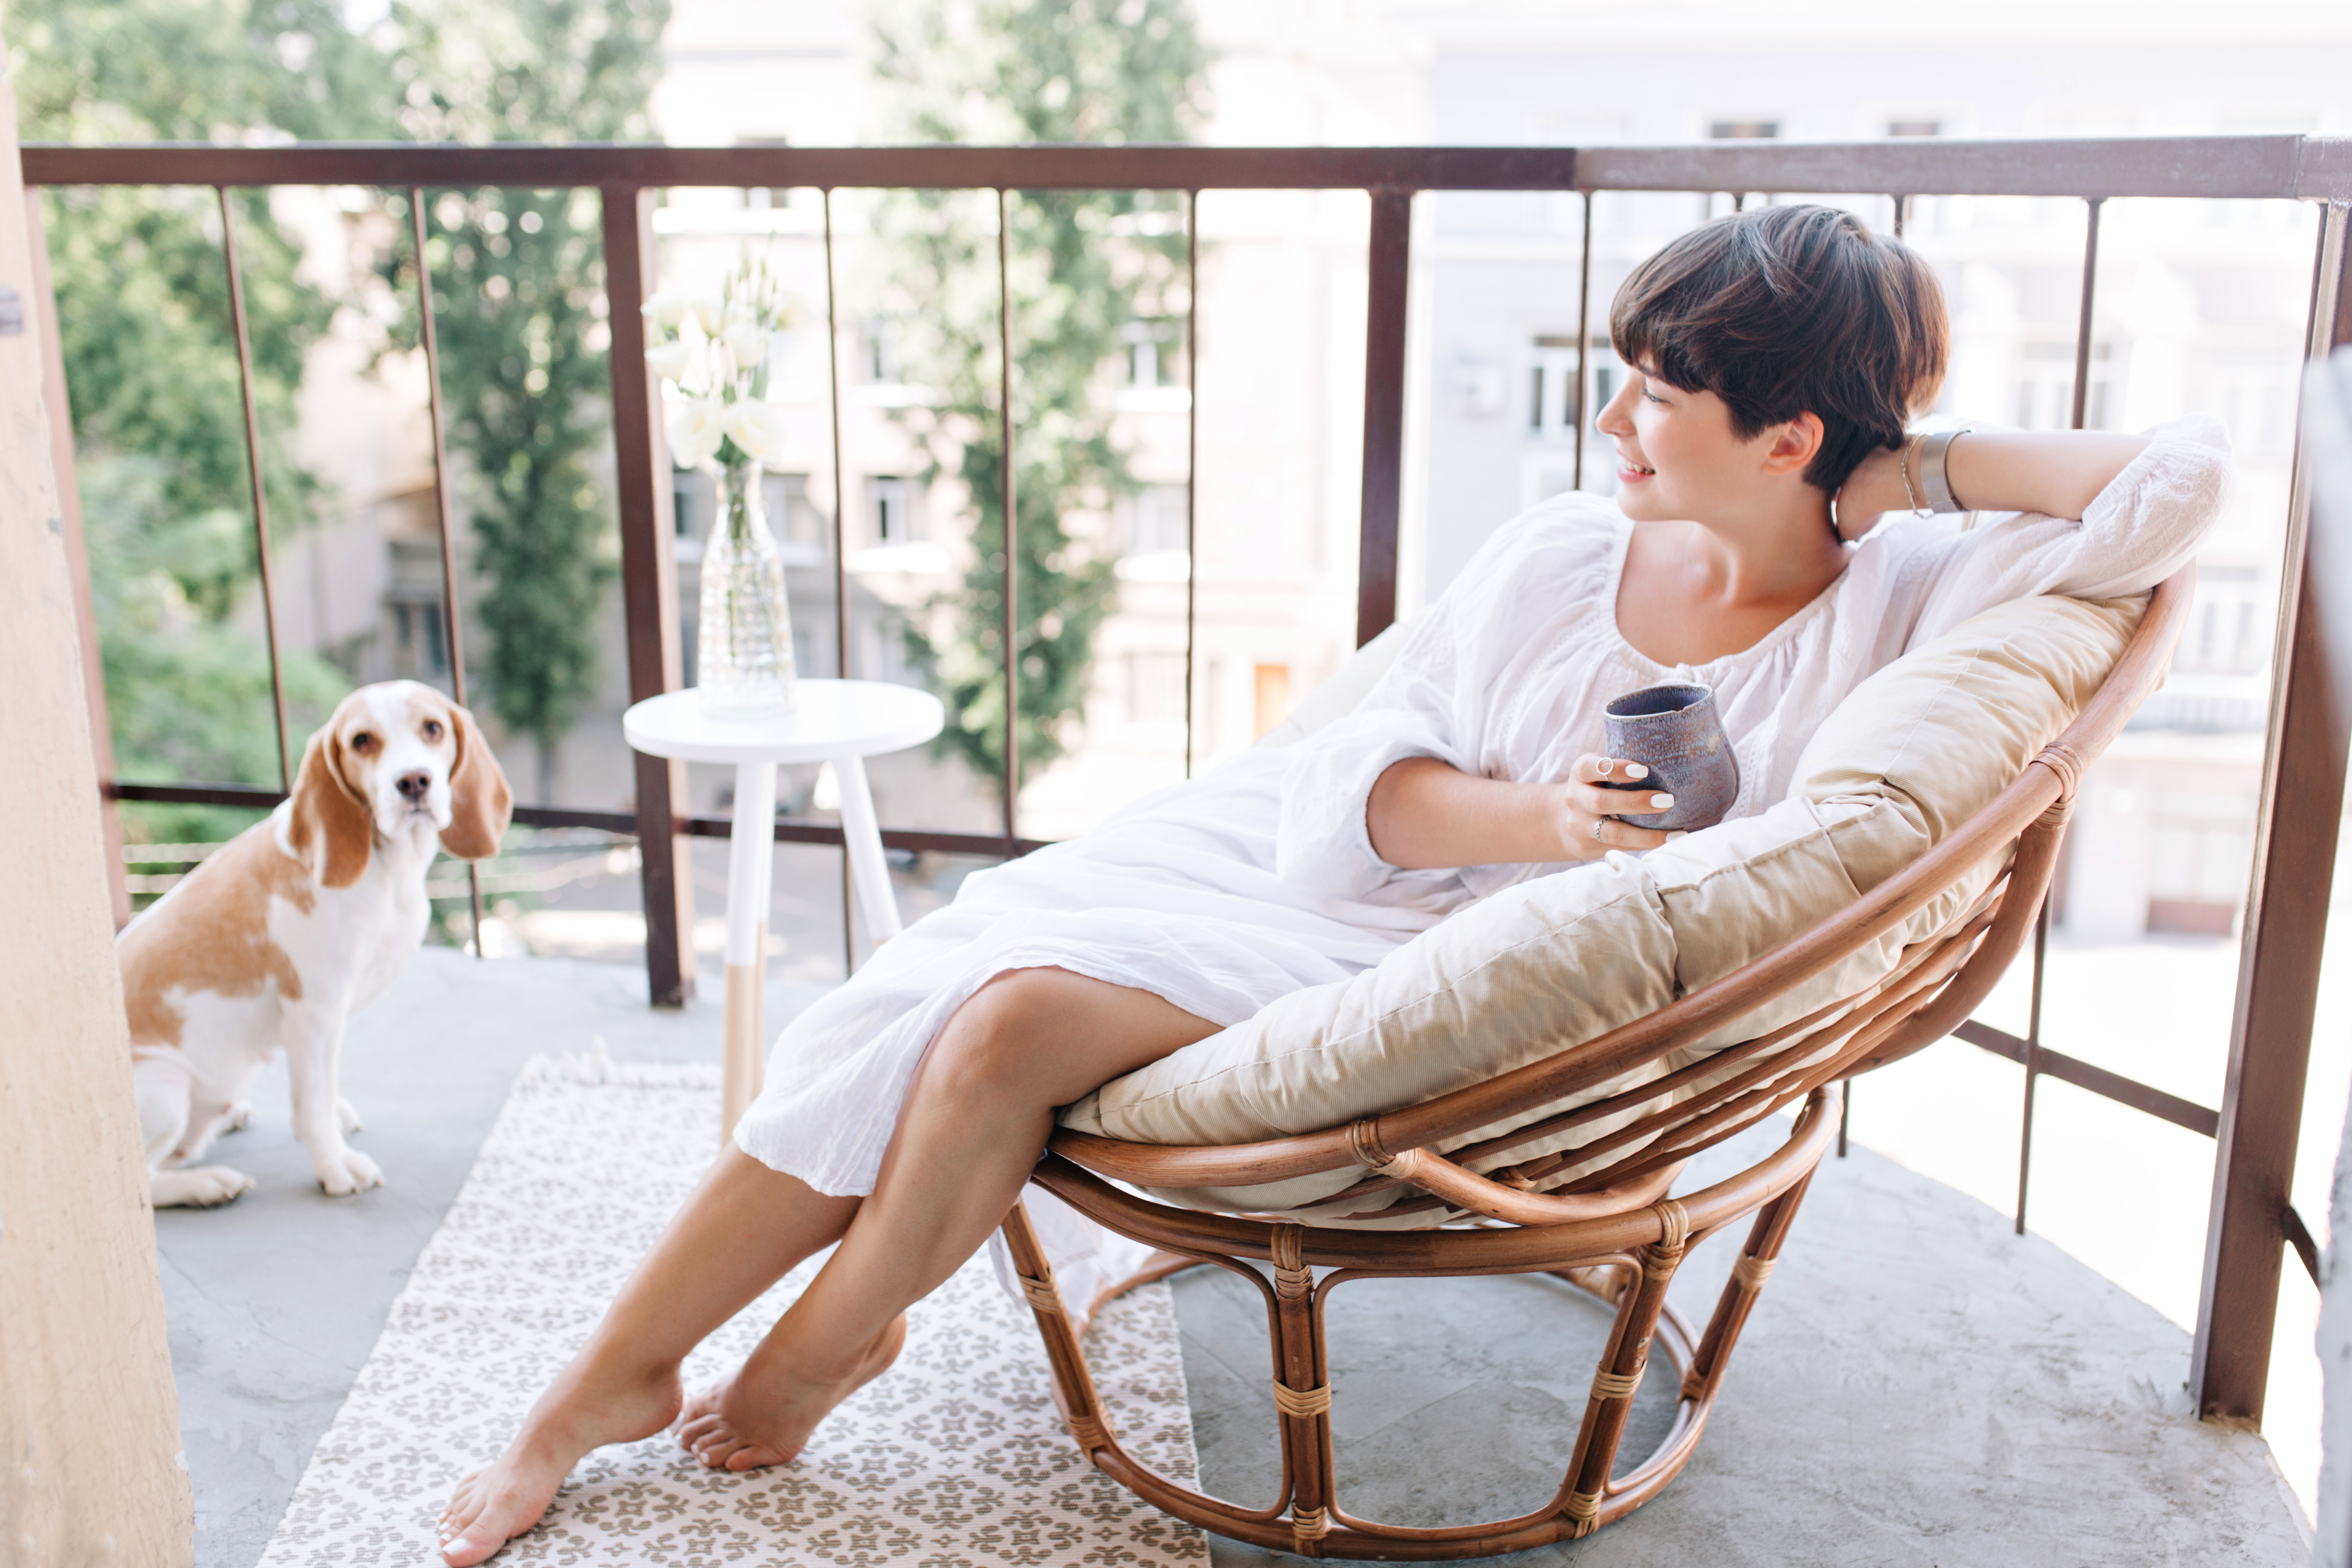 relaxed-barefooted-girl-white-dress-sitting-chair-balcony-holding-cup-tea (1)